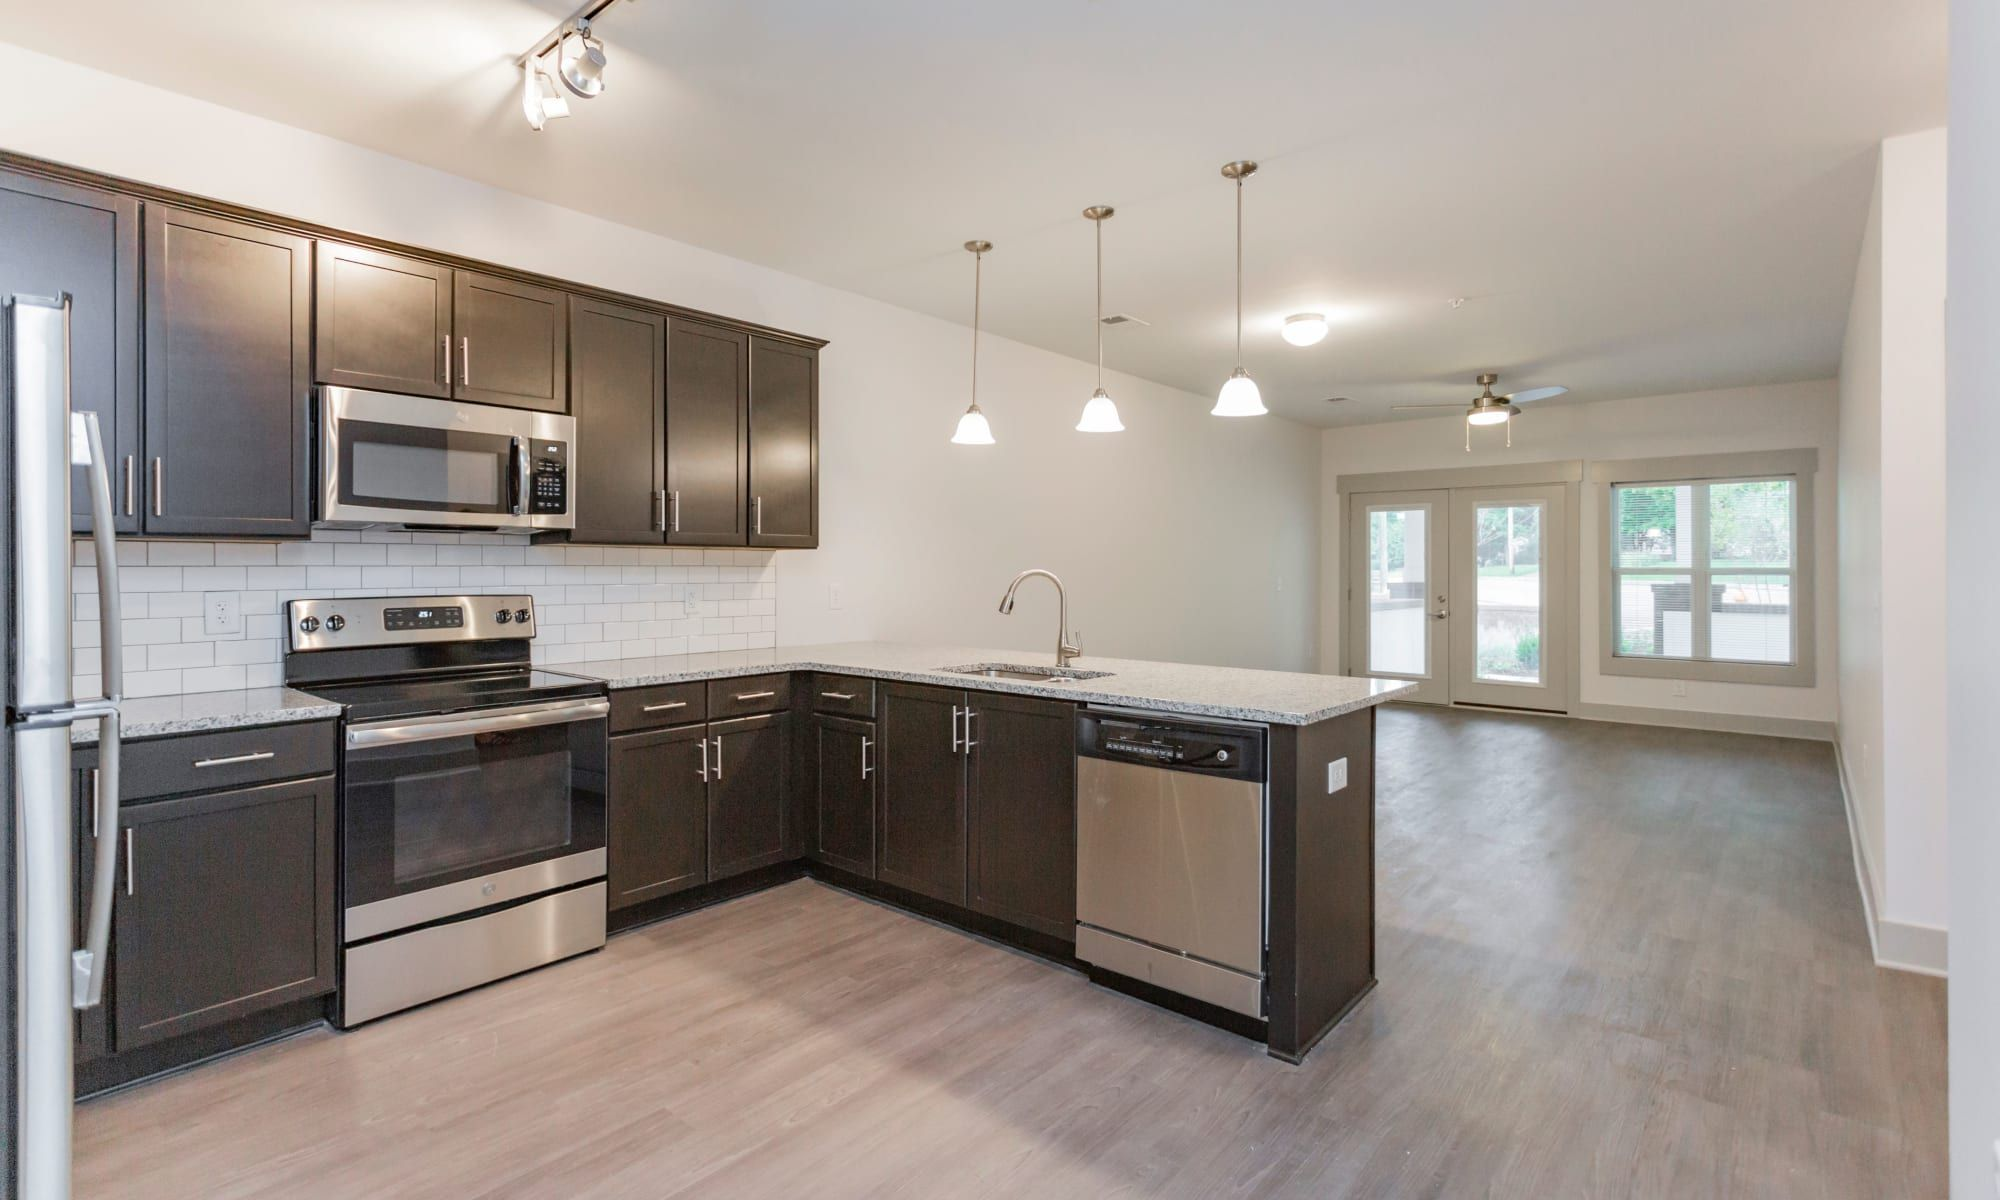 The Best One Bedroom Apartments In Downtown Nashville Tn And View Bedroom Apartment One Bedroom Apartment Nashville Apartment